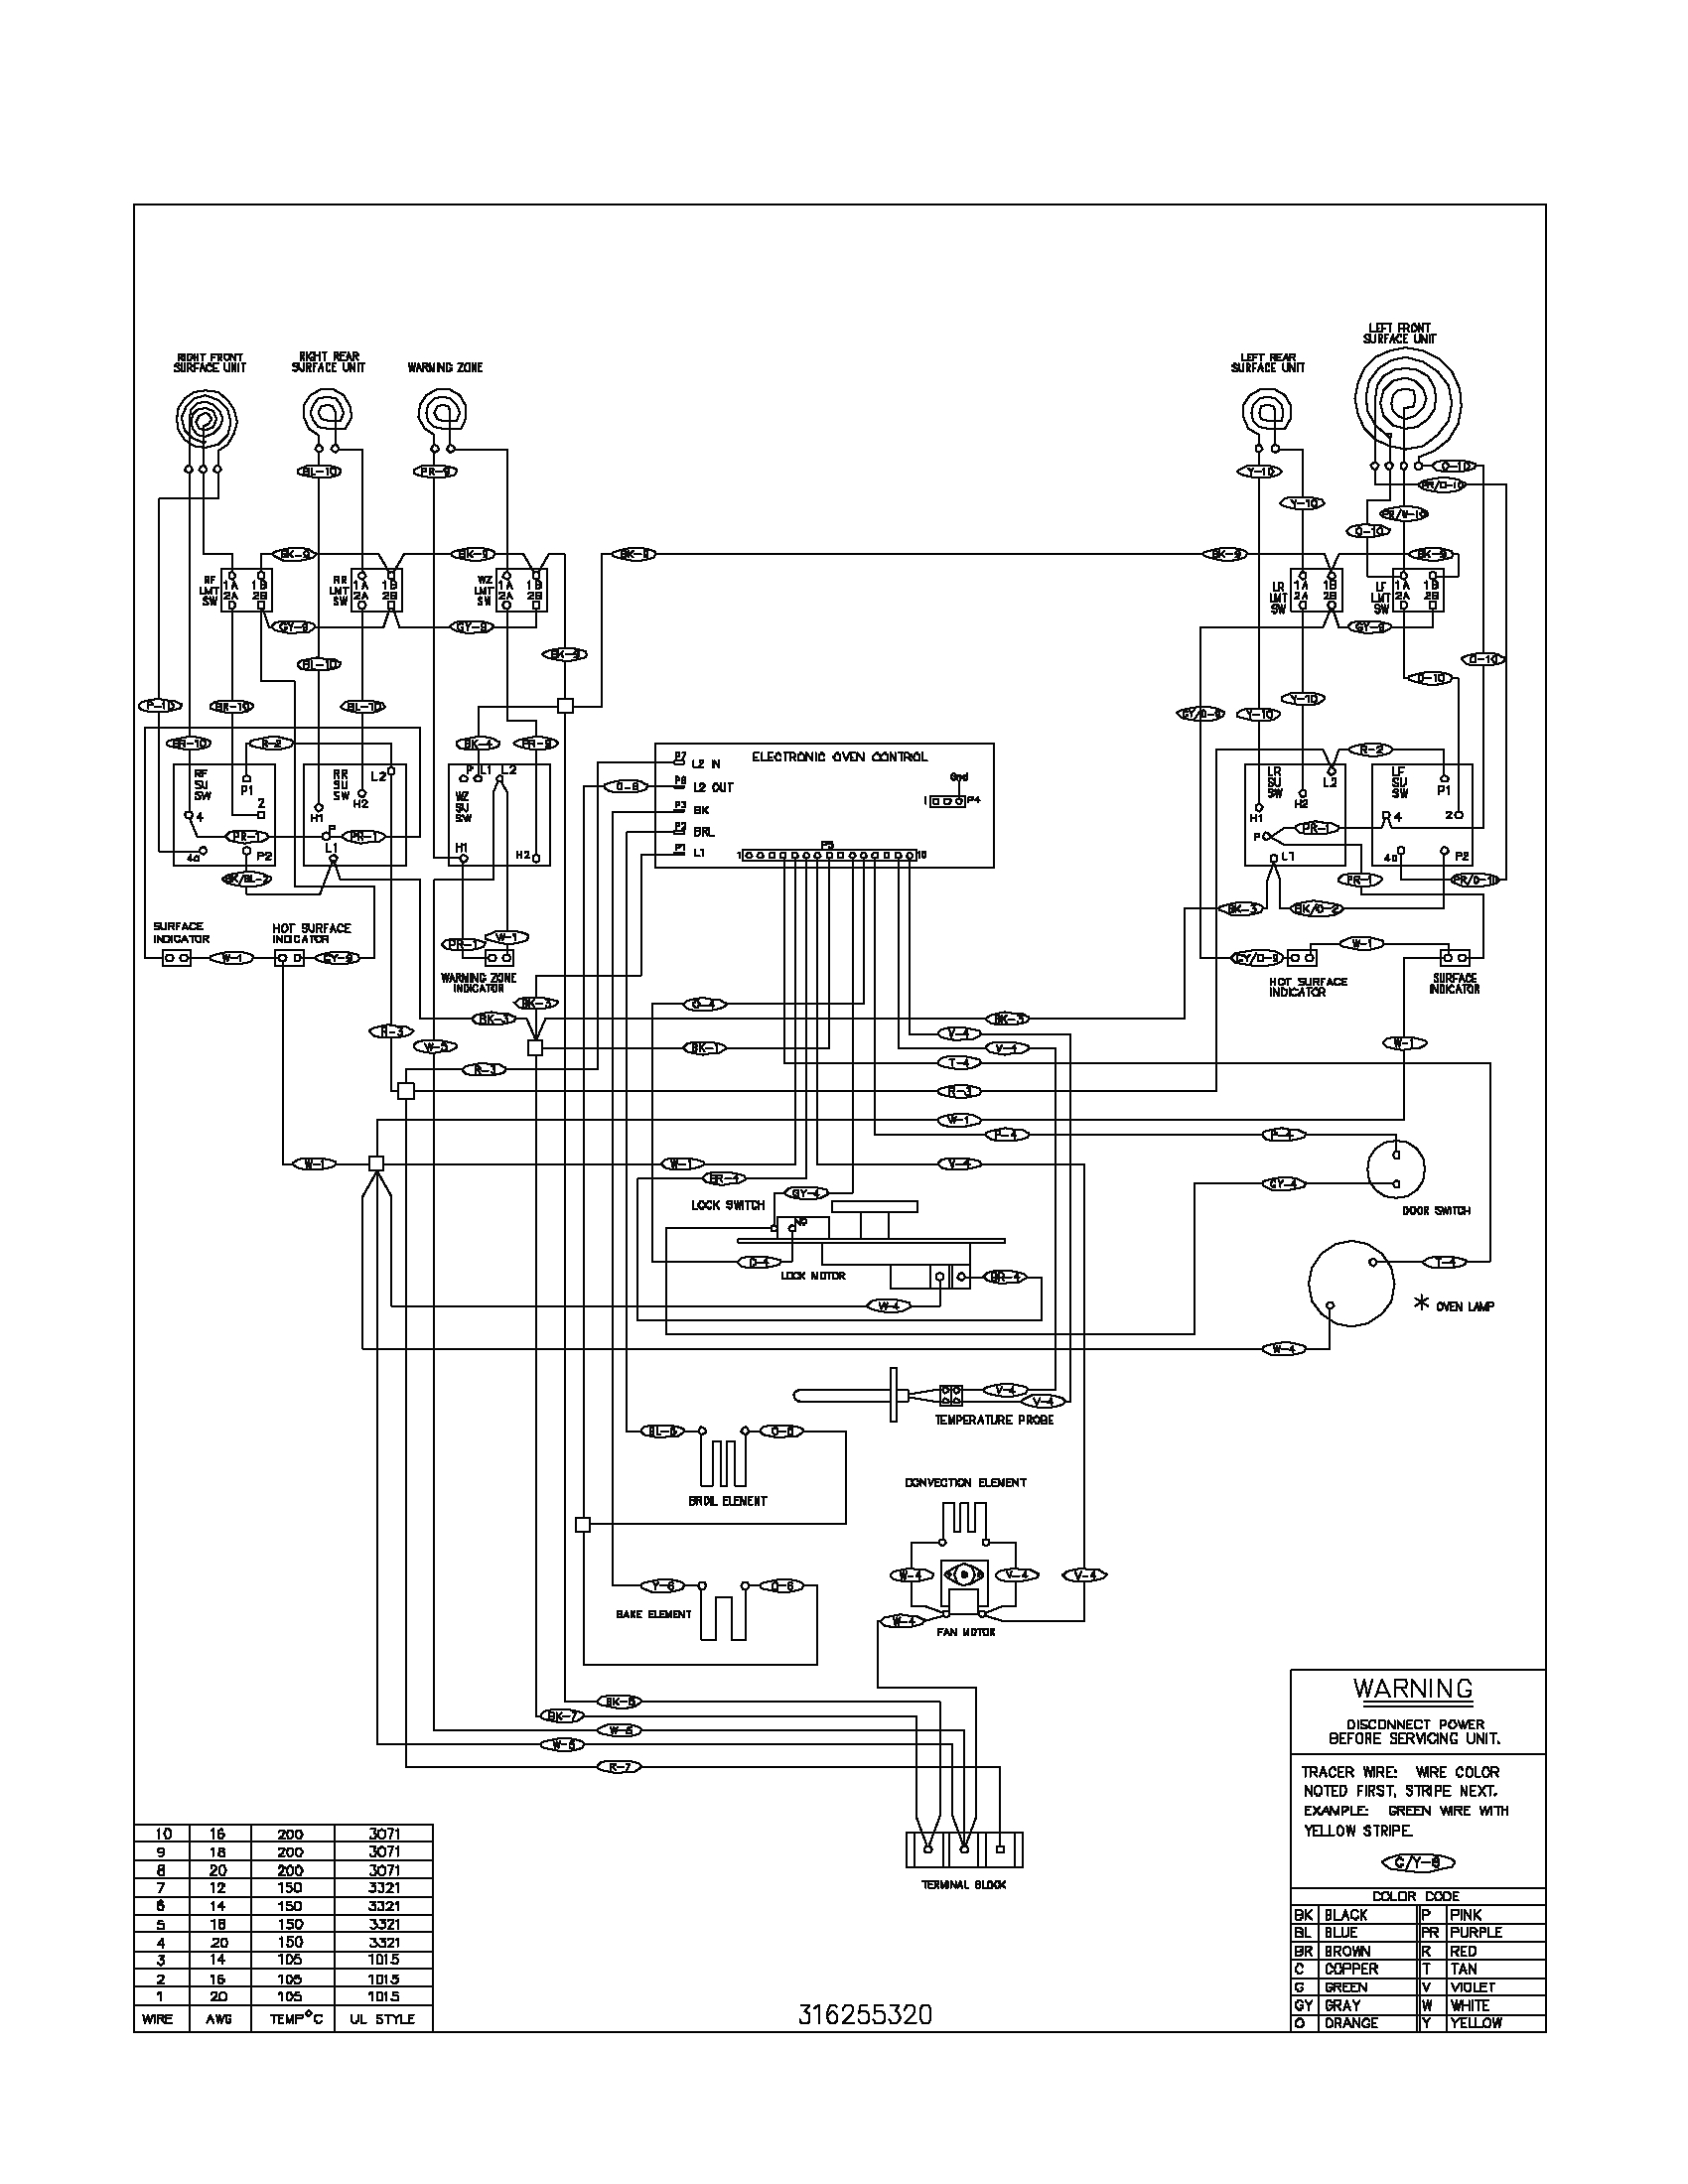 hobart dishwasher am14 wiring diagram